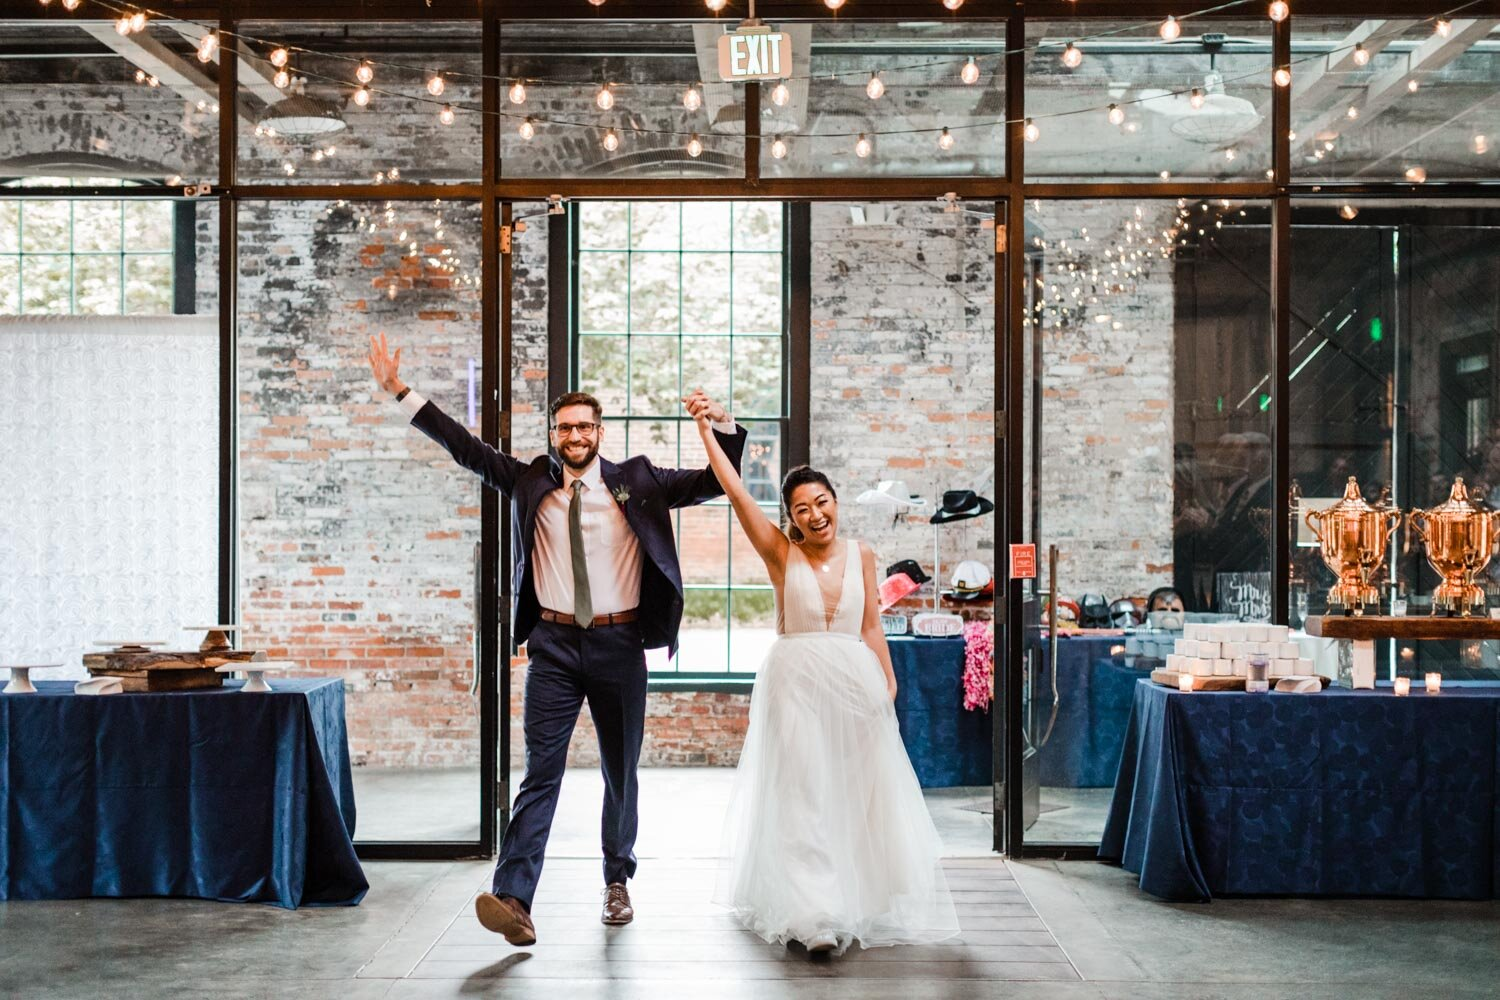 Mt Washington Mill Dye House industrial Baltimore wedding by Barbara O Photography-40.jpg